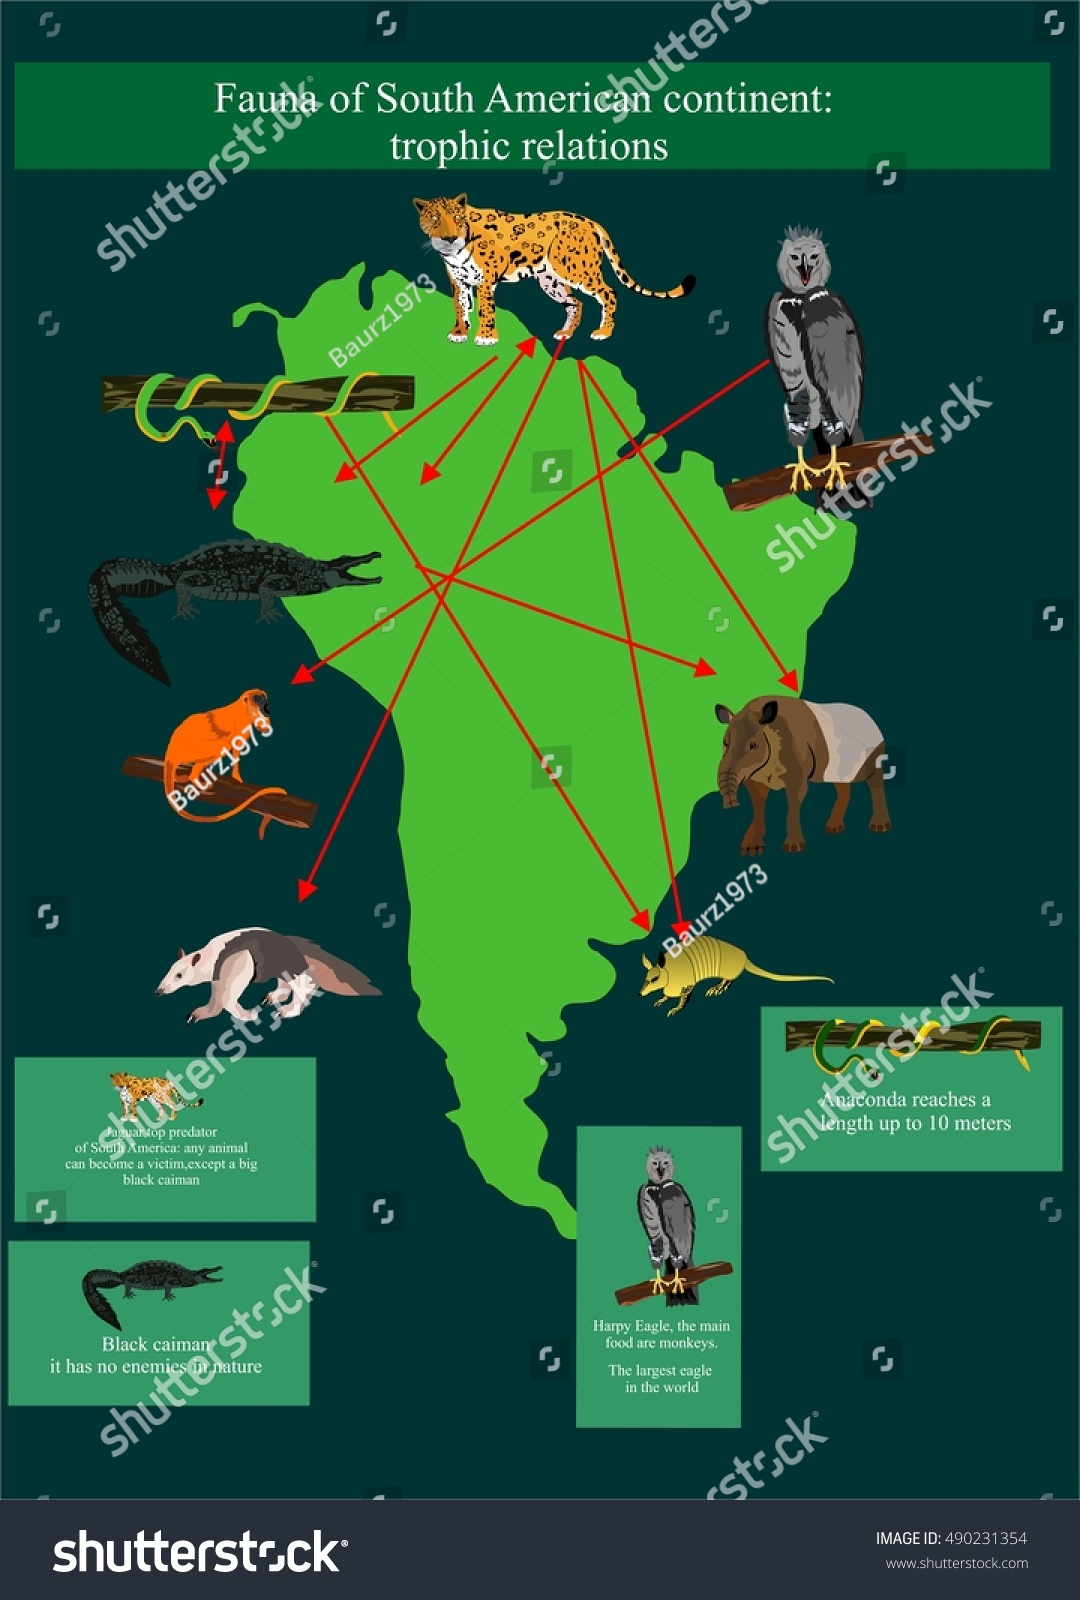 Map south america fauna biodiversity animals stock vector map of south america with its fauna biodiversity of animals wildlife vector illustration for gumiabroncs Images